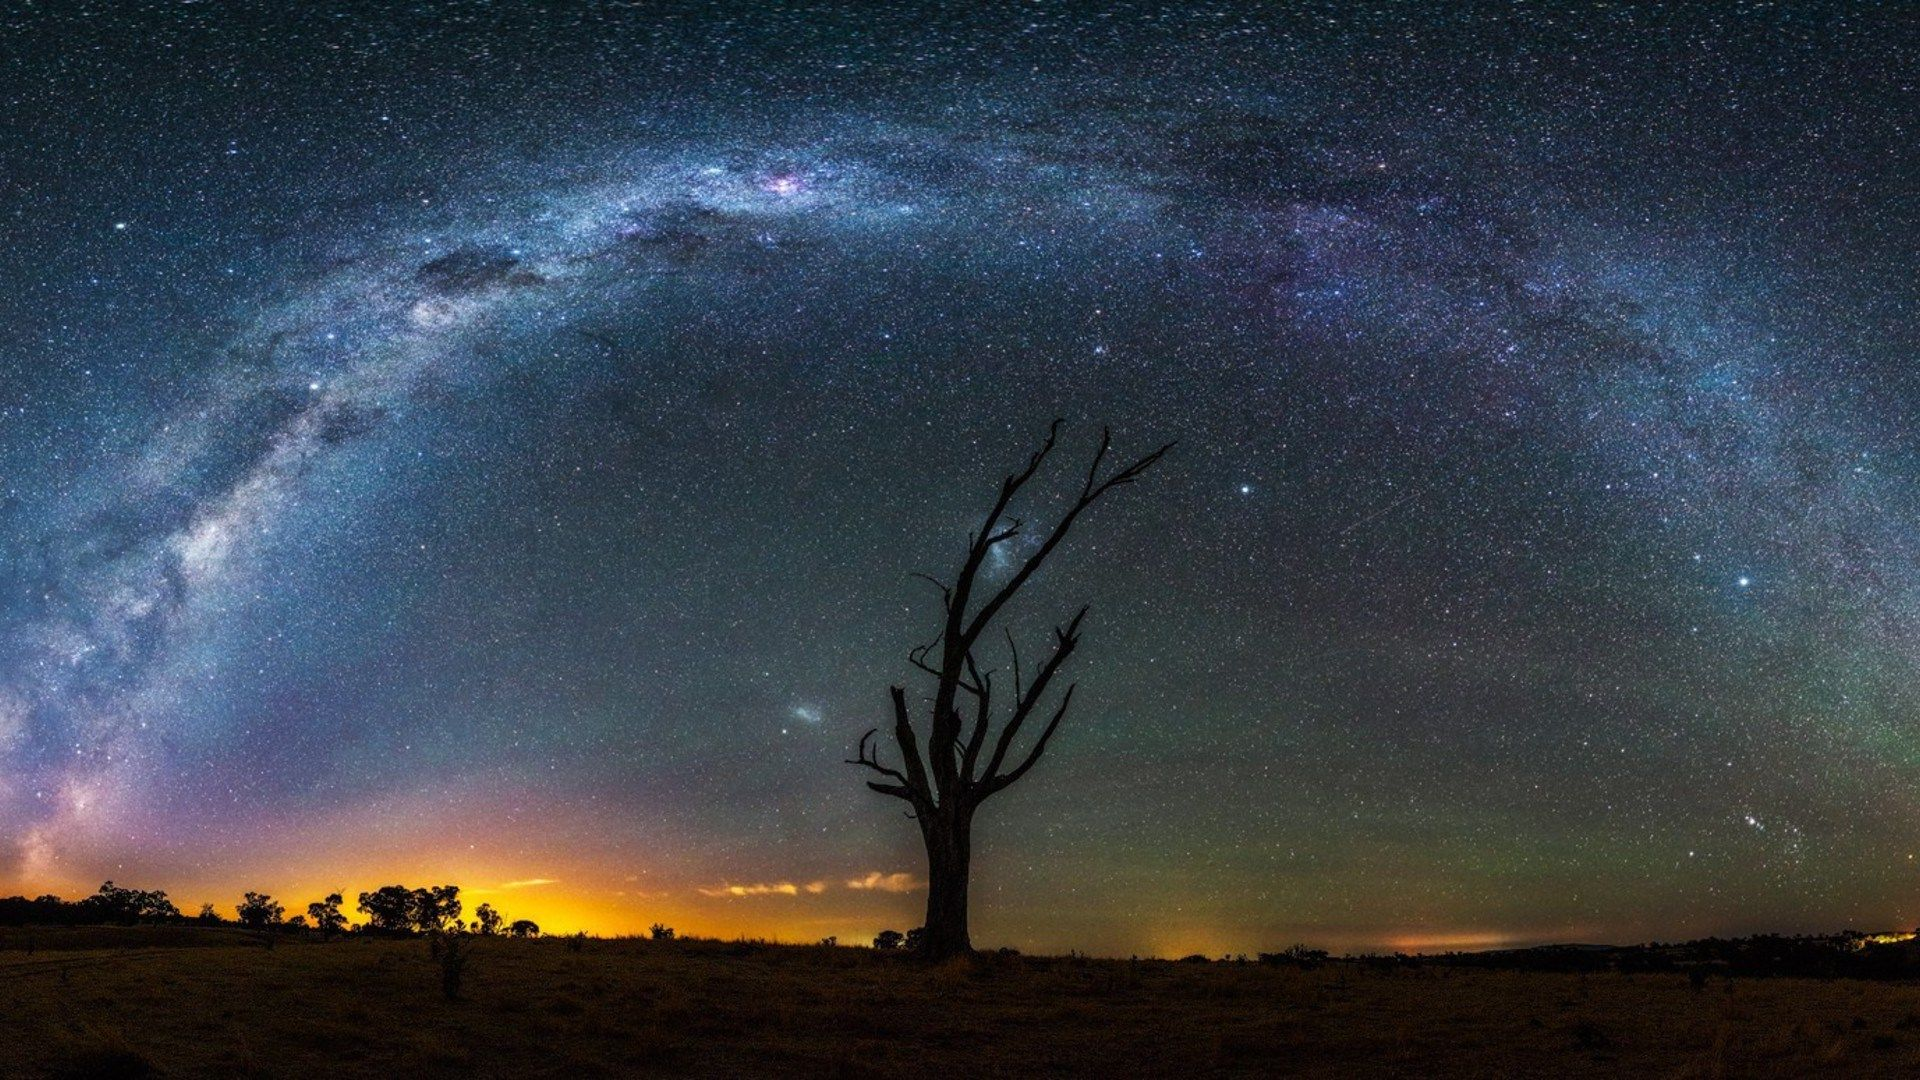 milky way nocturnal starry night blue landscapes 1920x1080